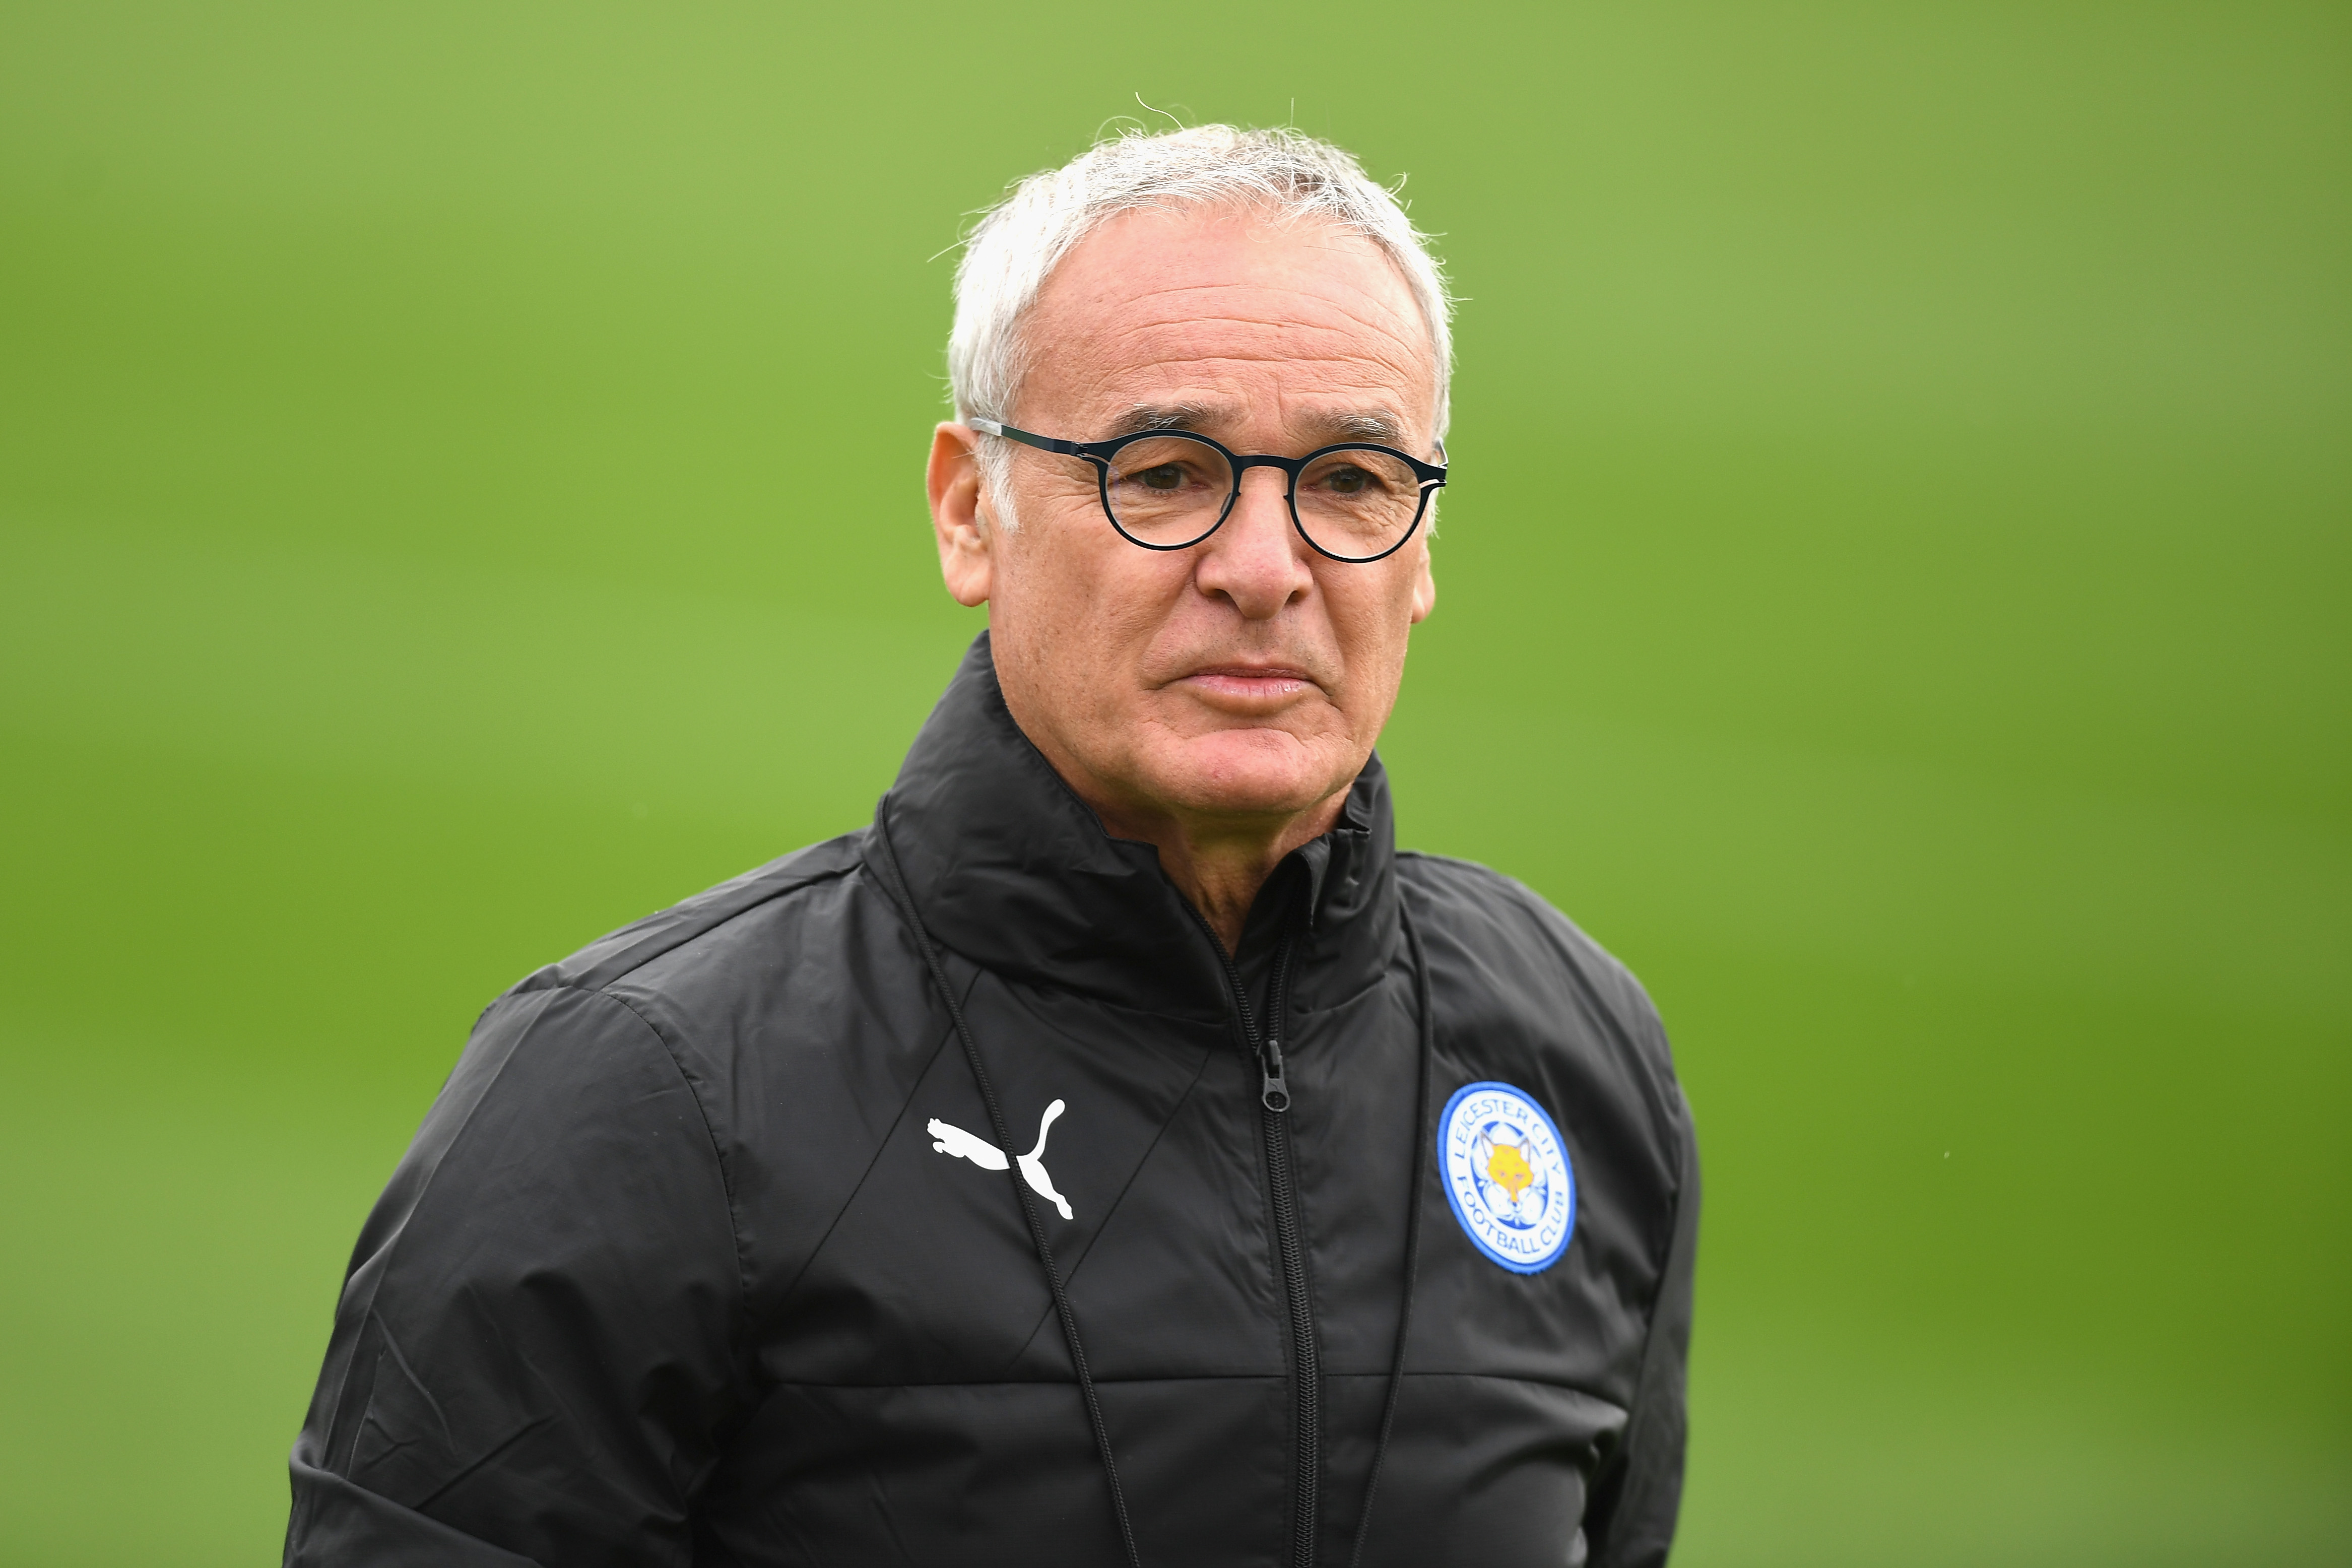 When is Leicester v West Brom? Kick-off time, TV channel, odds and head to head